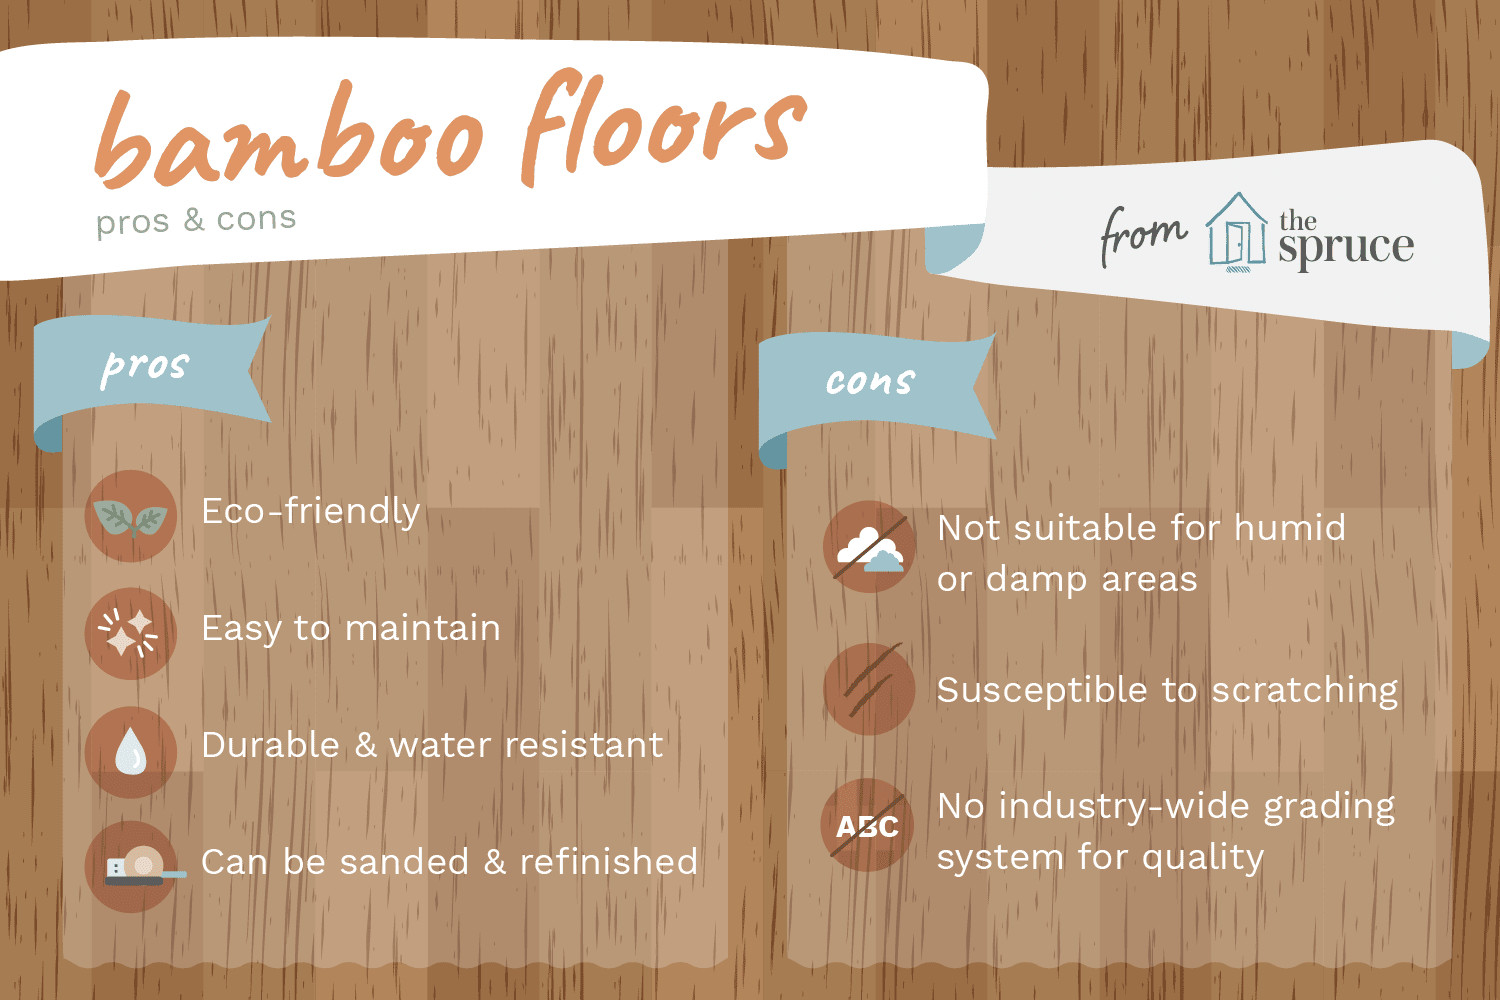 hardwood floor refinishing tulsa of the advantages and disadvantages of bamboo flooring regarding benefits and drawbacks of bamboo floors 1314694 v3 5b102fccff1b780036c0a4fa